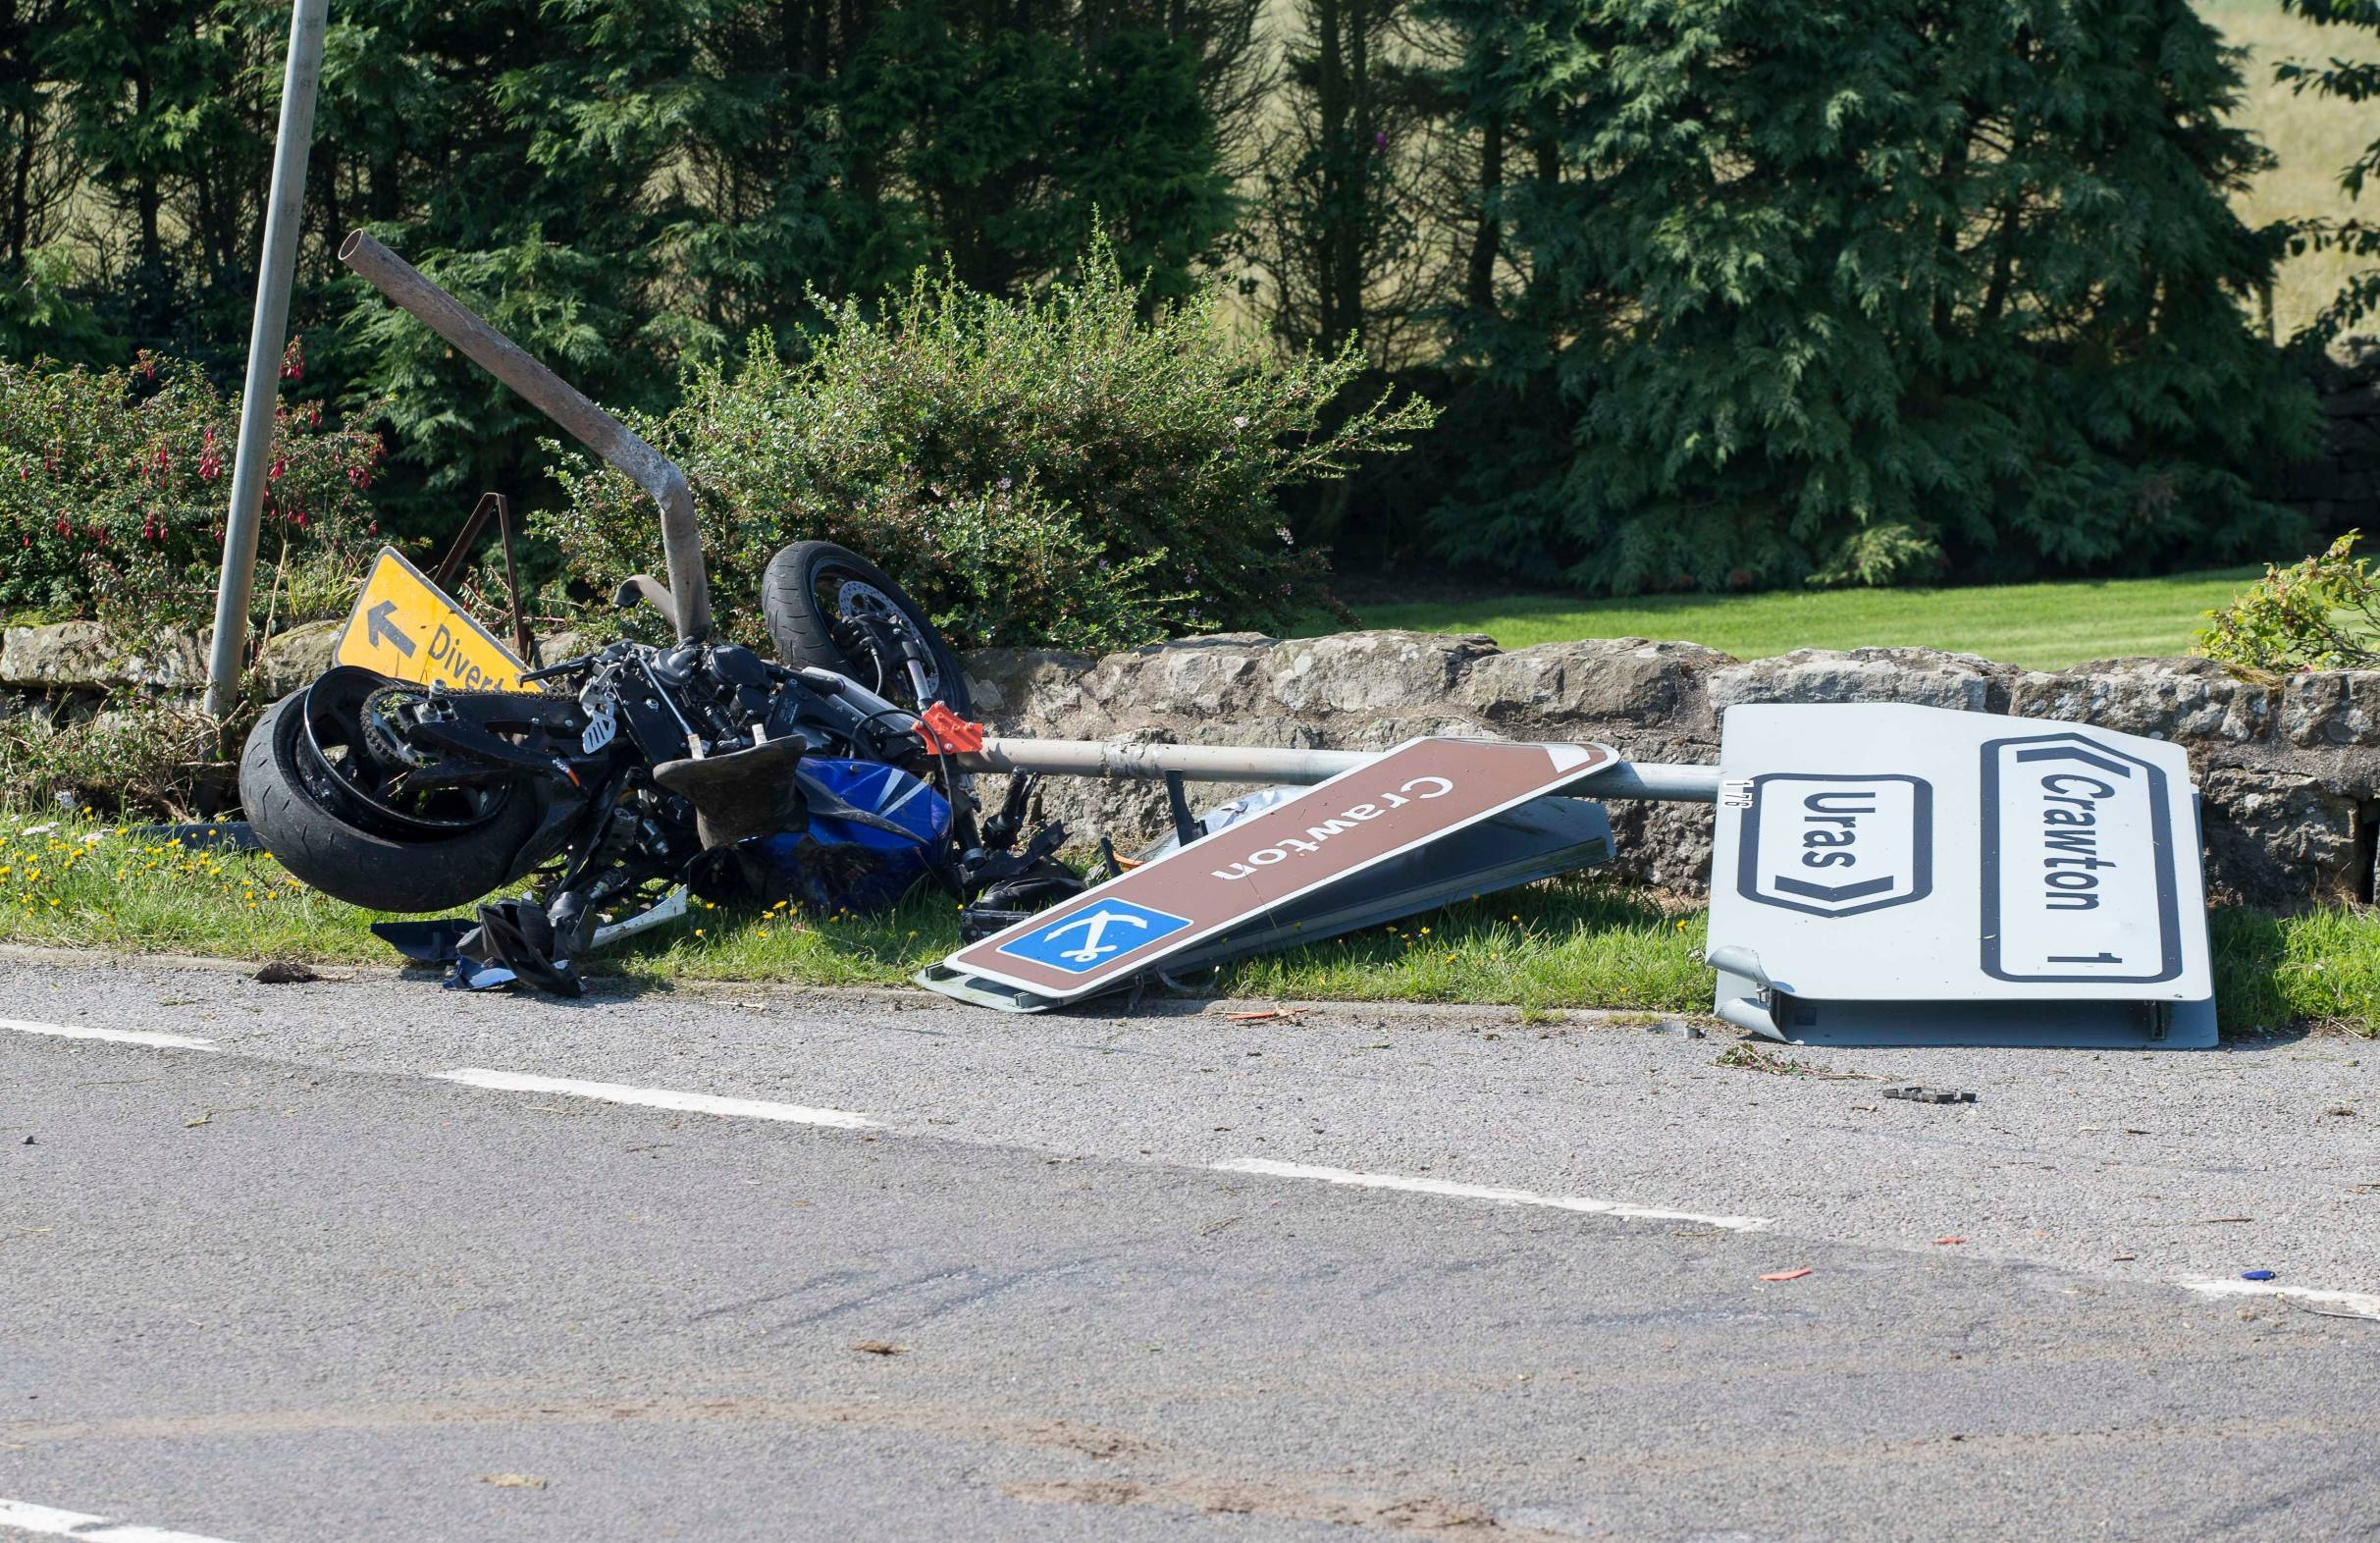 The motorbike hit a road sign on the A92 today